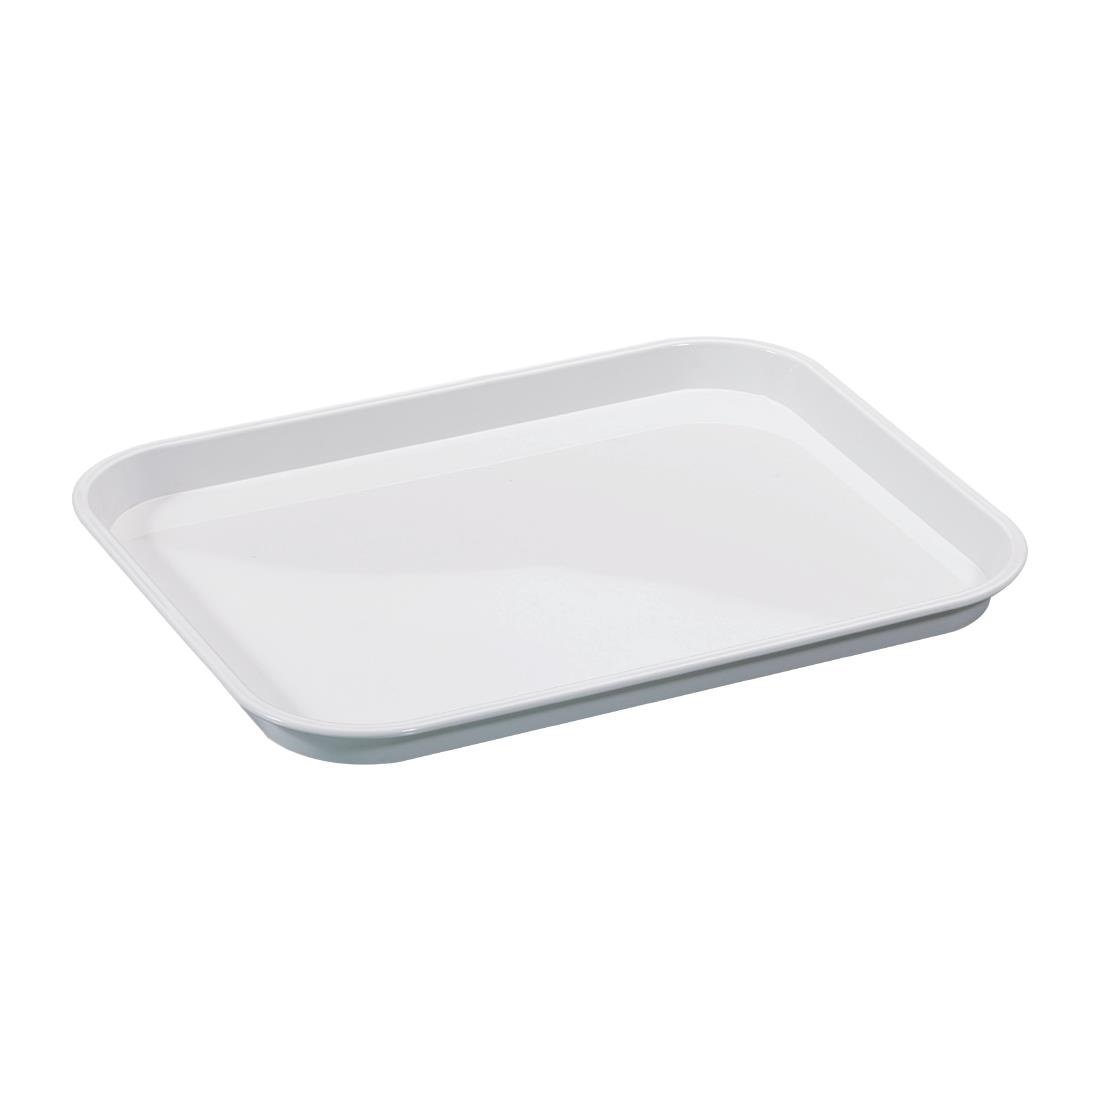 Polystyrene Food Tray 12in